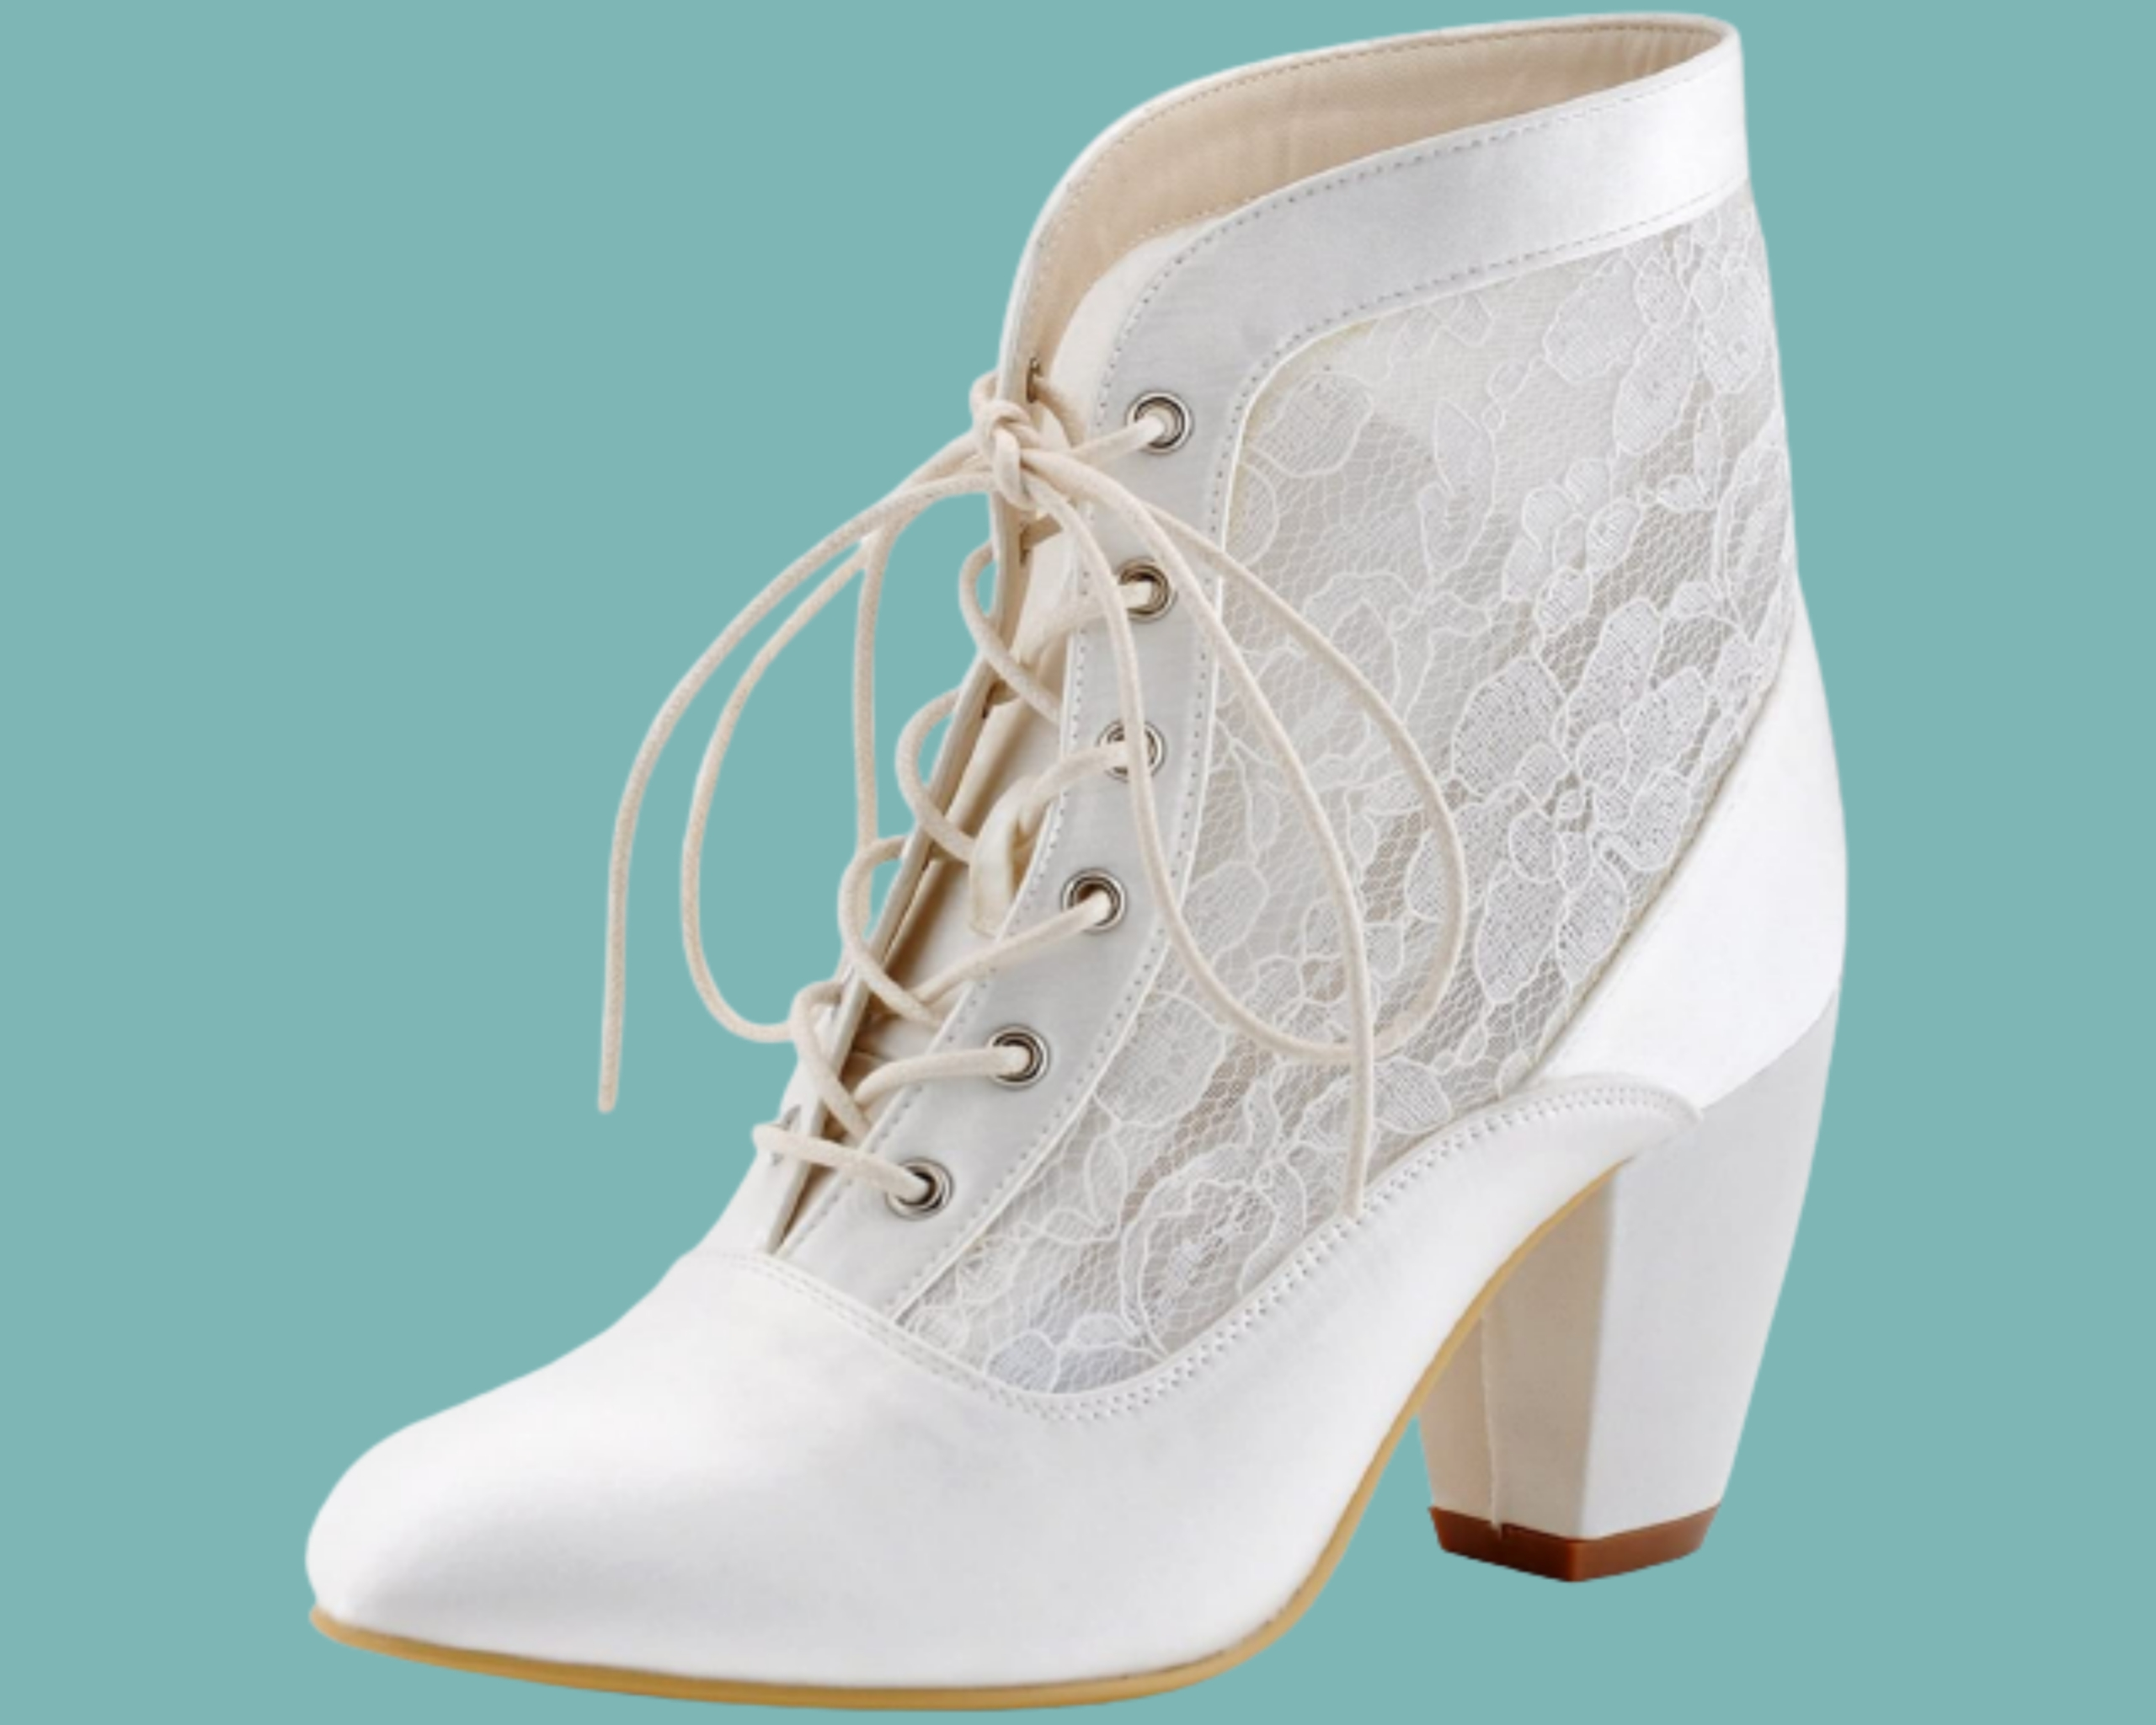 Lace boots for wedding